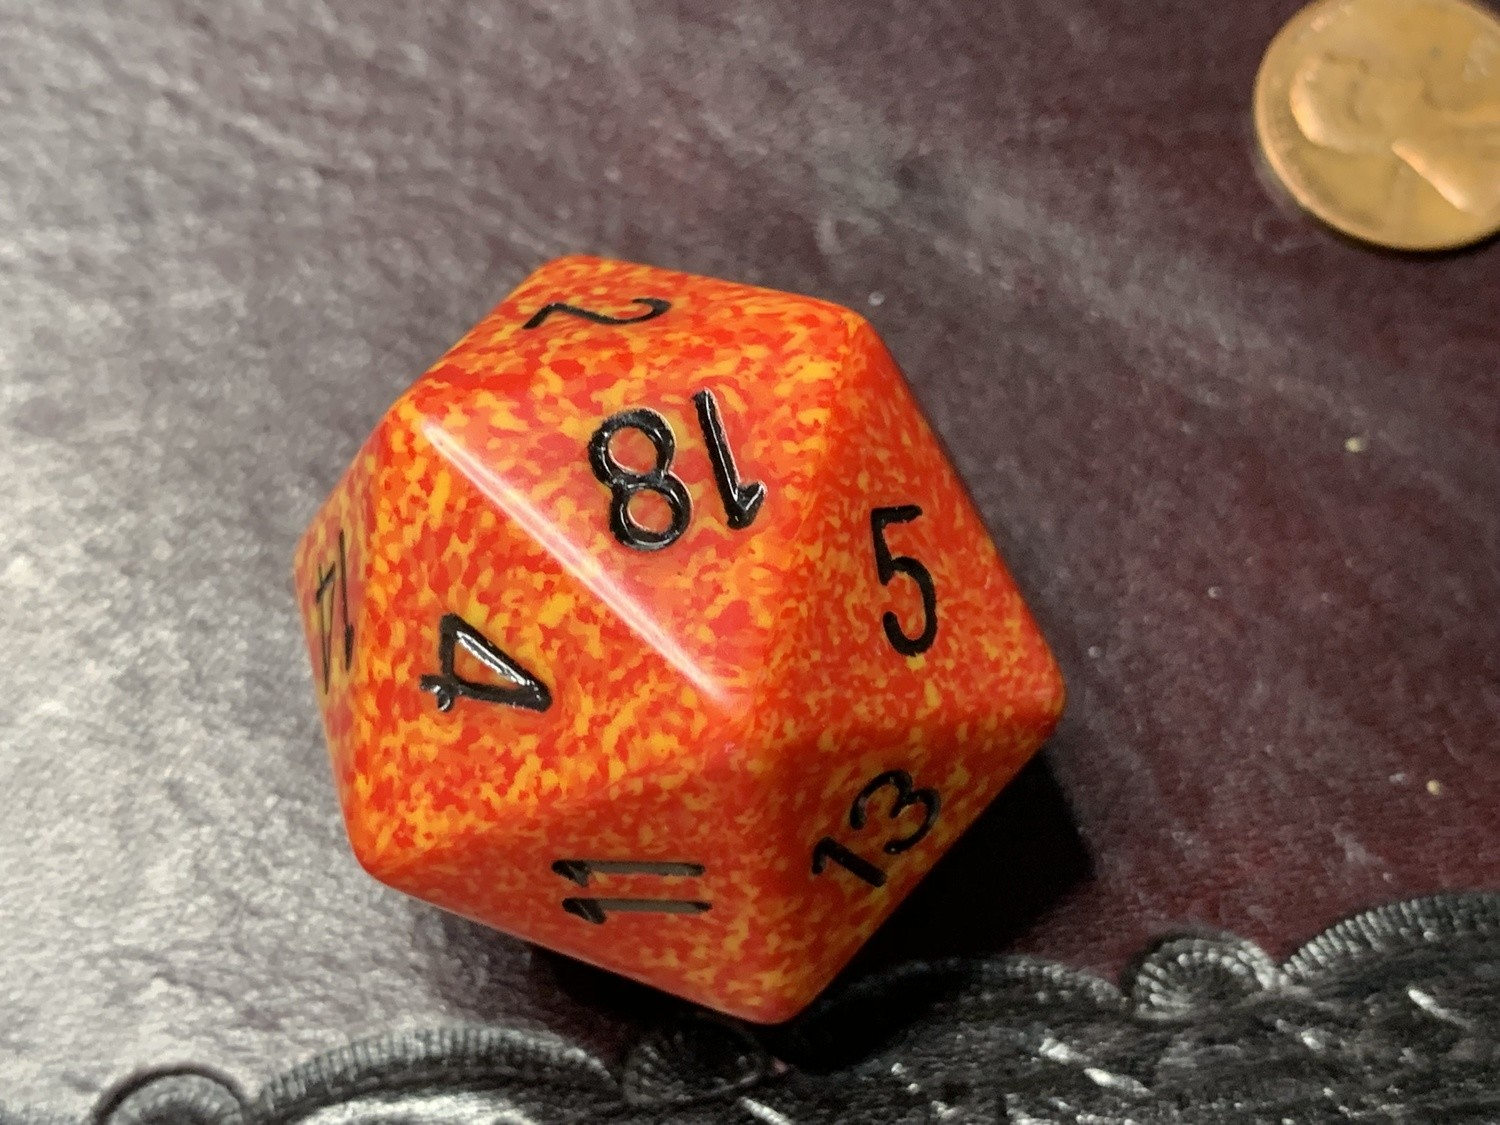 Jumbo 34mm Speckled D20 Die Orange & Red with Black Extra Large Counter Dice